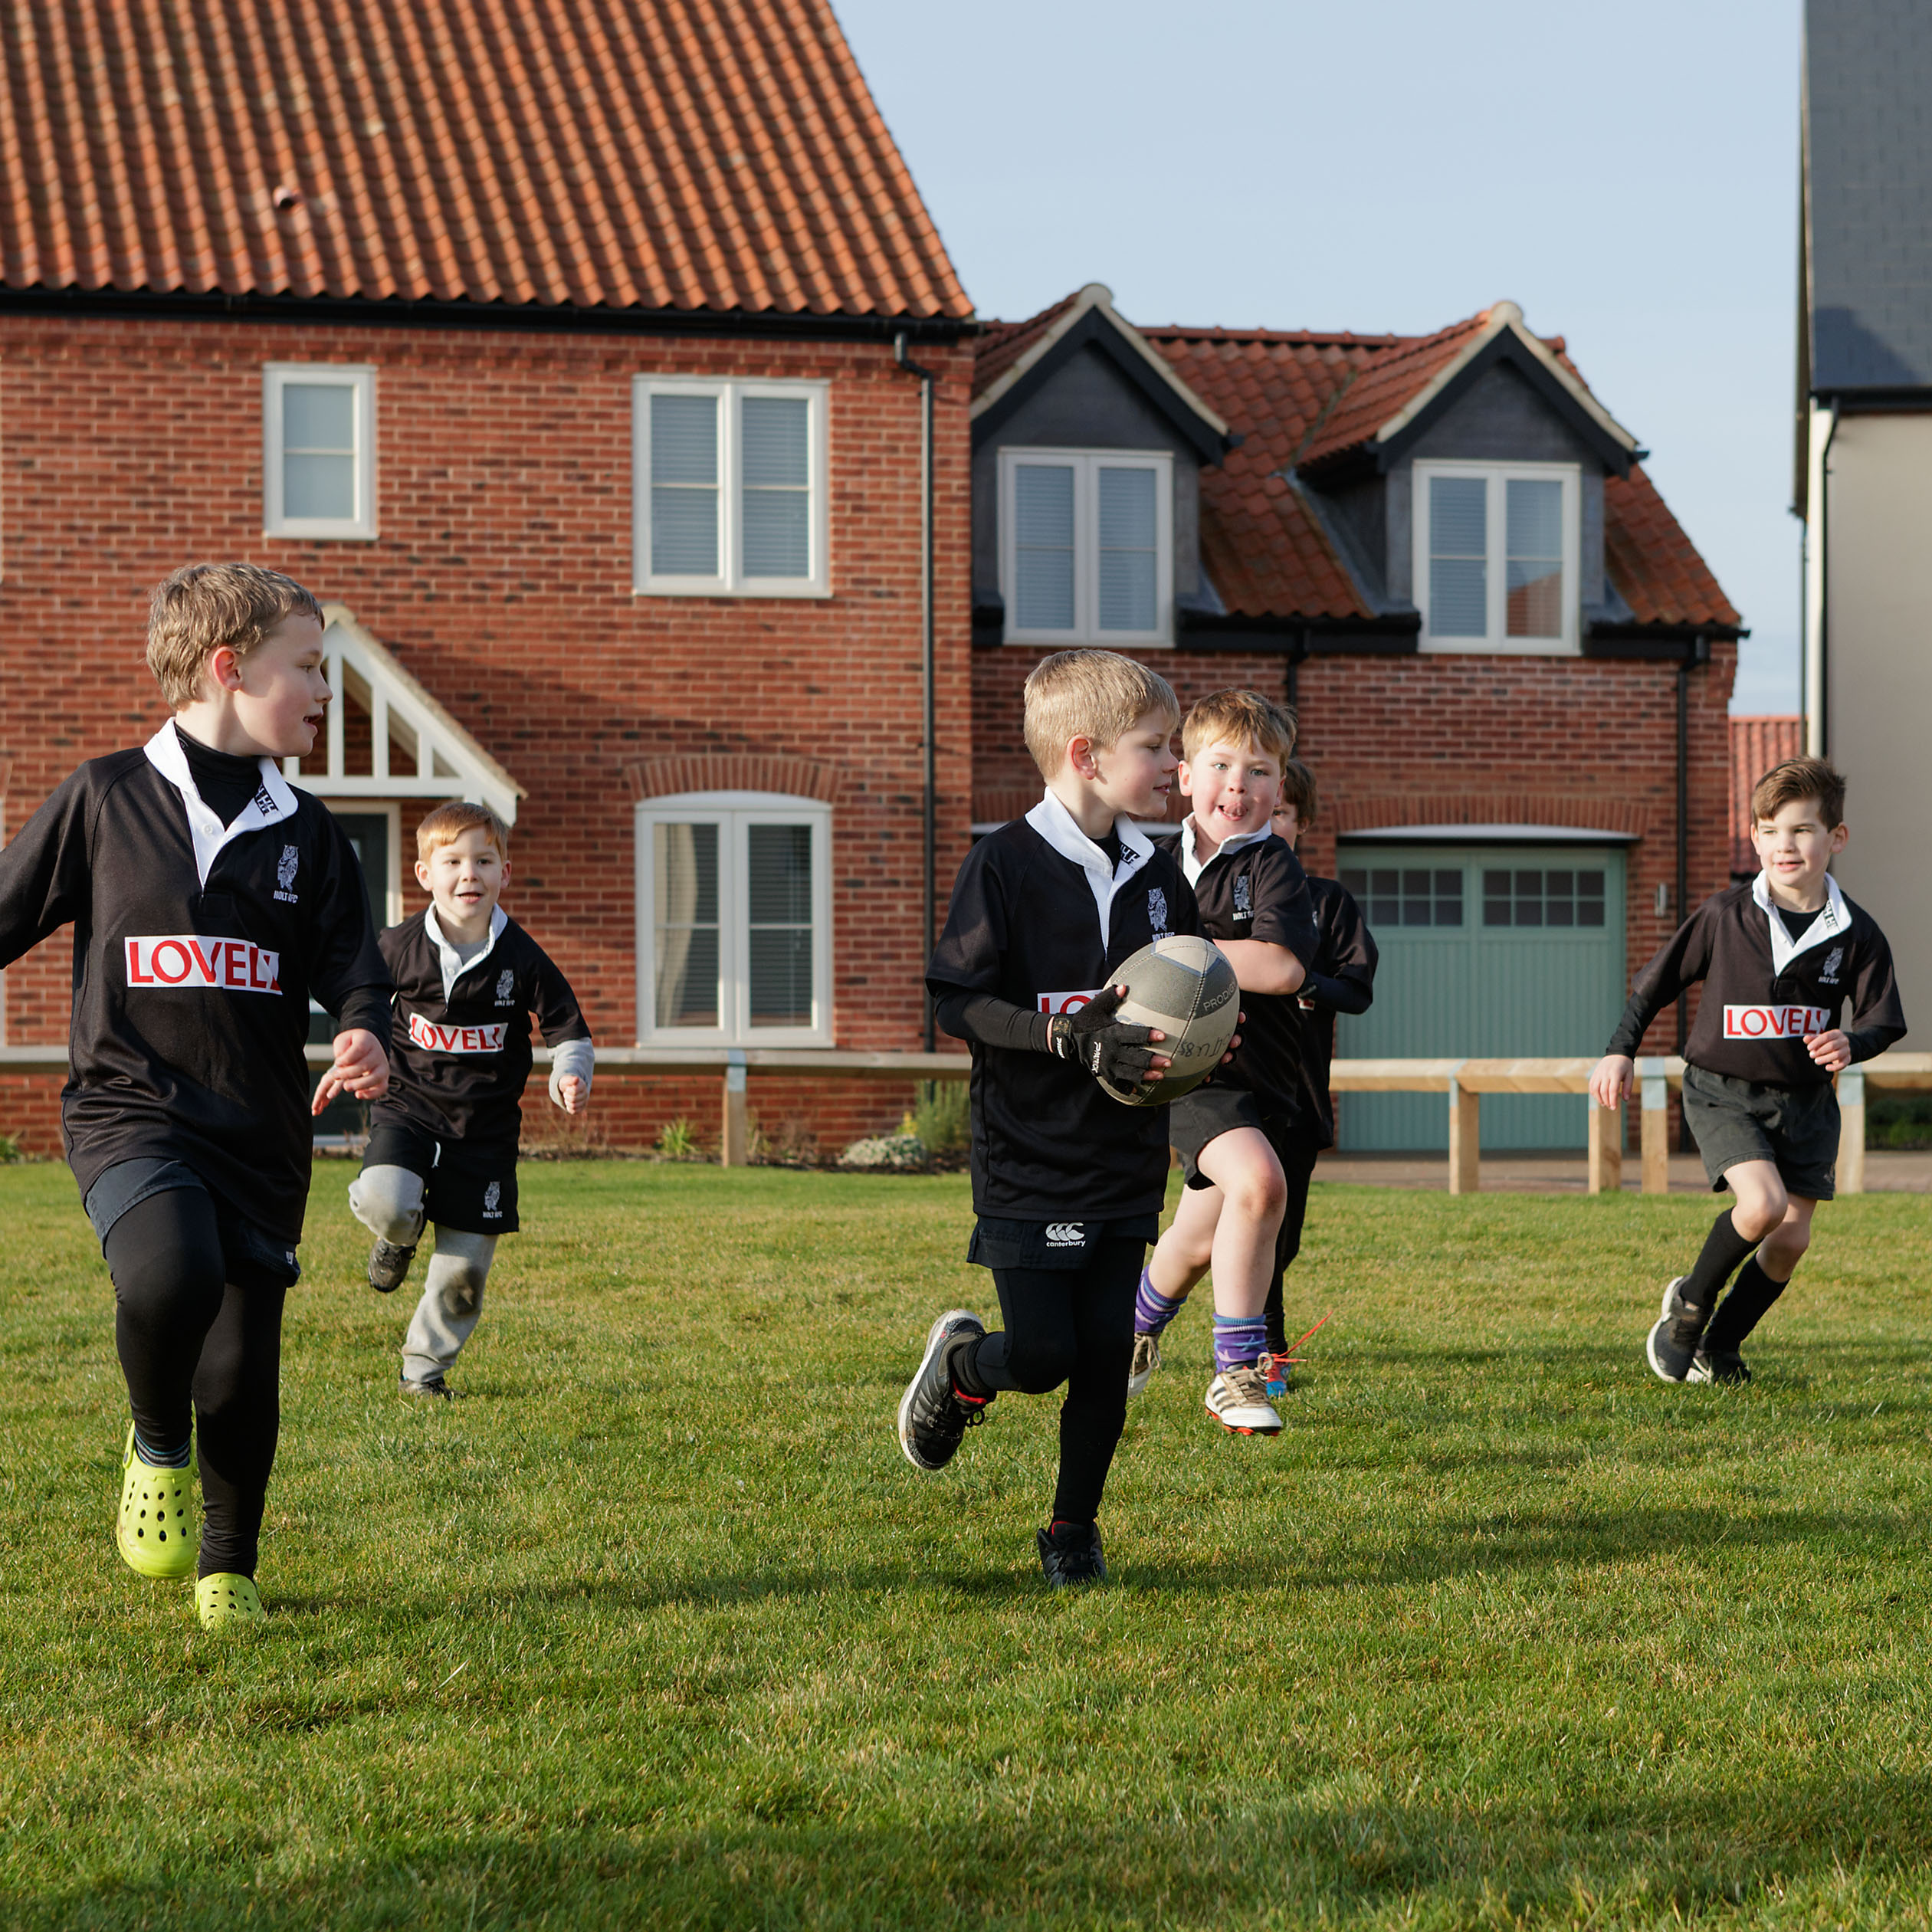 26012031 - Holt RFC 'Mini Rugby' players at Lovell Homes' Heath Farm development in Holt